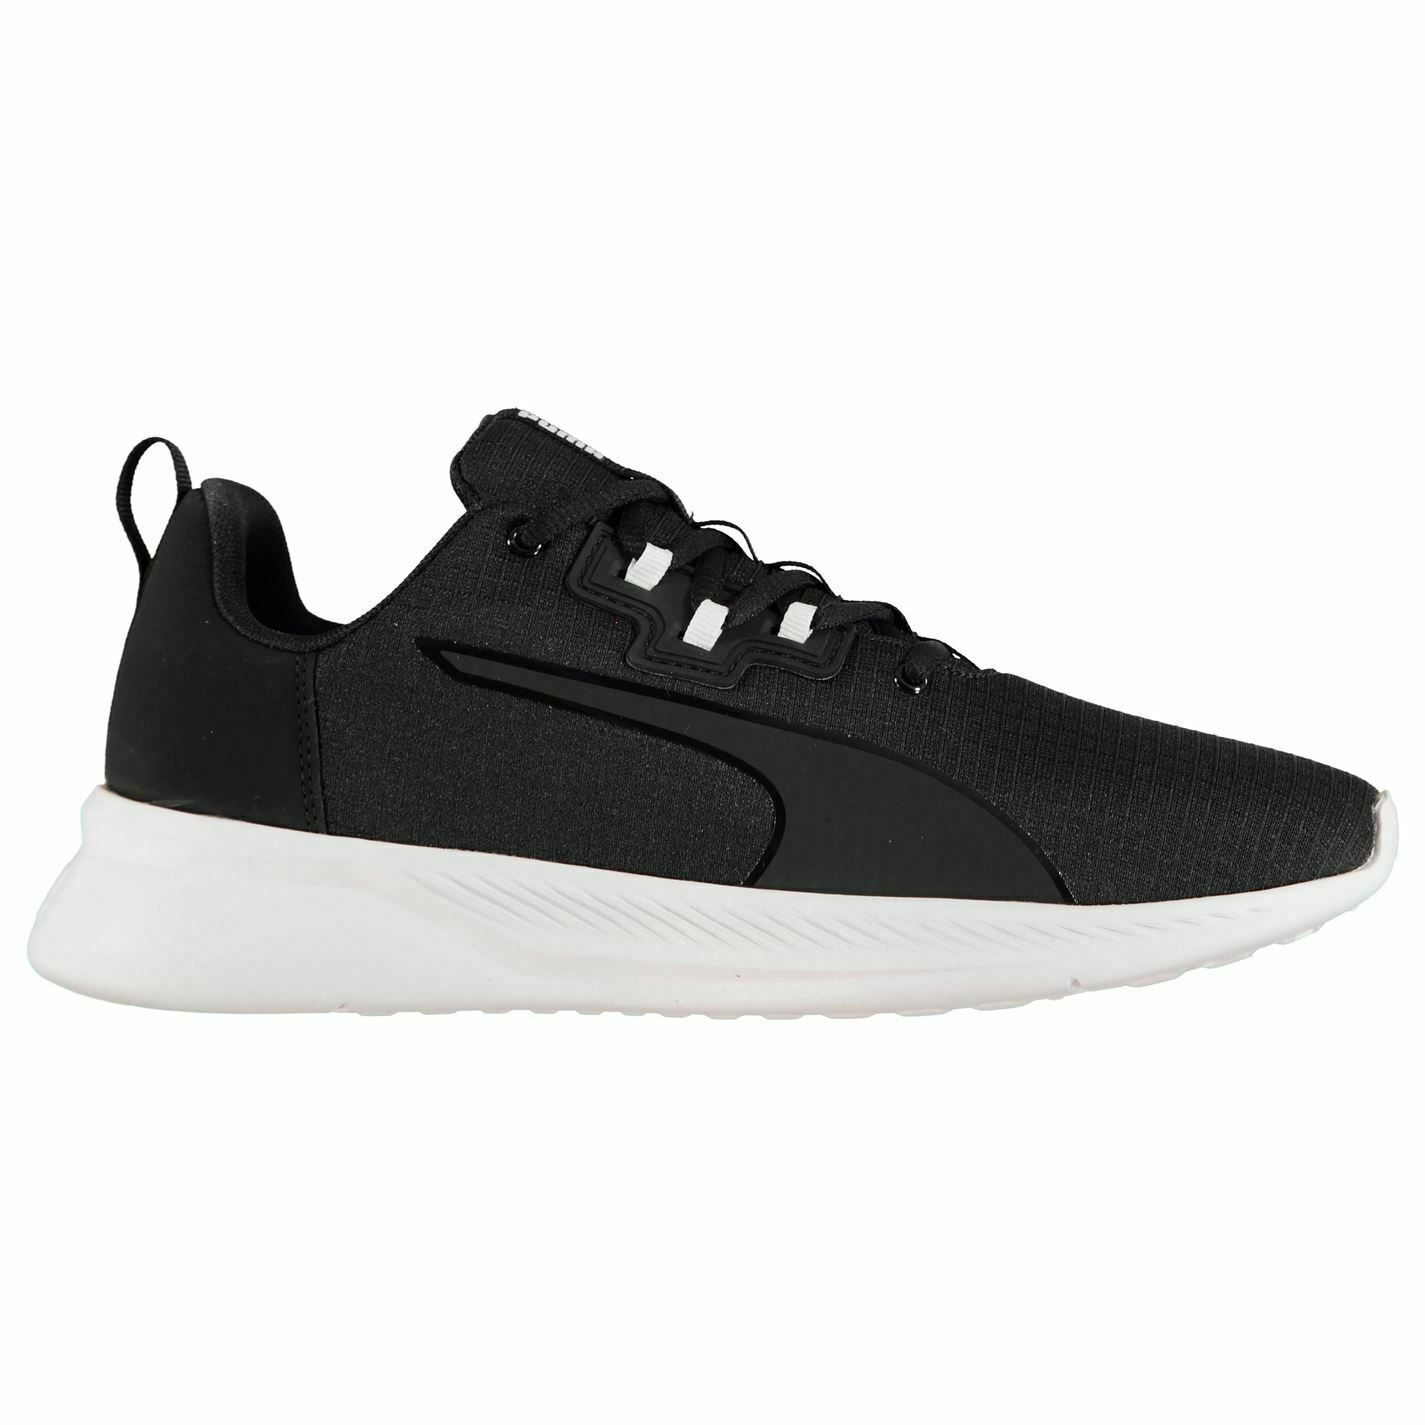 e4c902970 Puma Mens Tishatsu Lace Up Road Running shoes Low Trainers Top  nvulbo2655-Men s Trainers